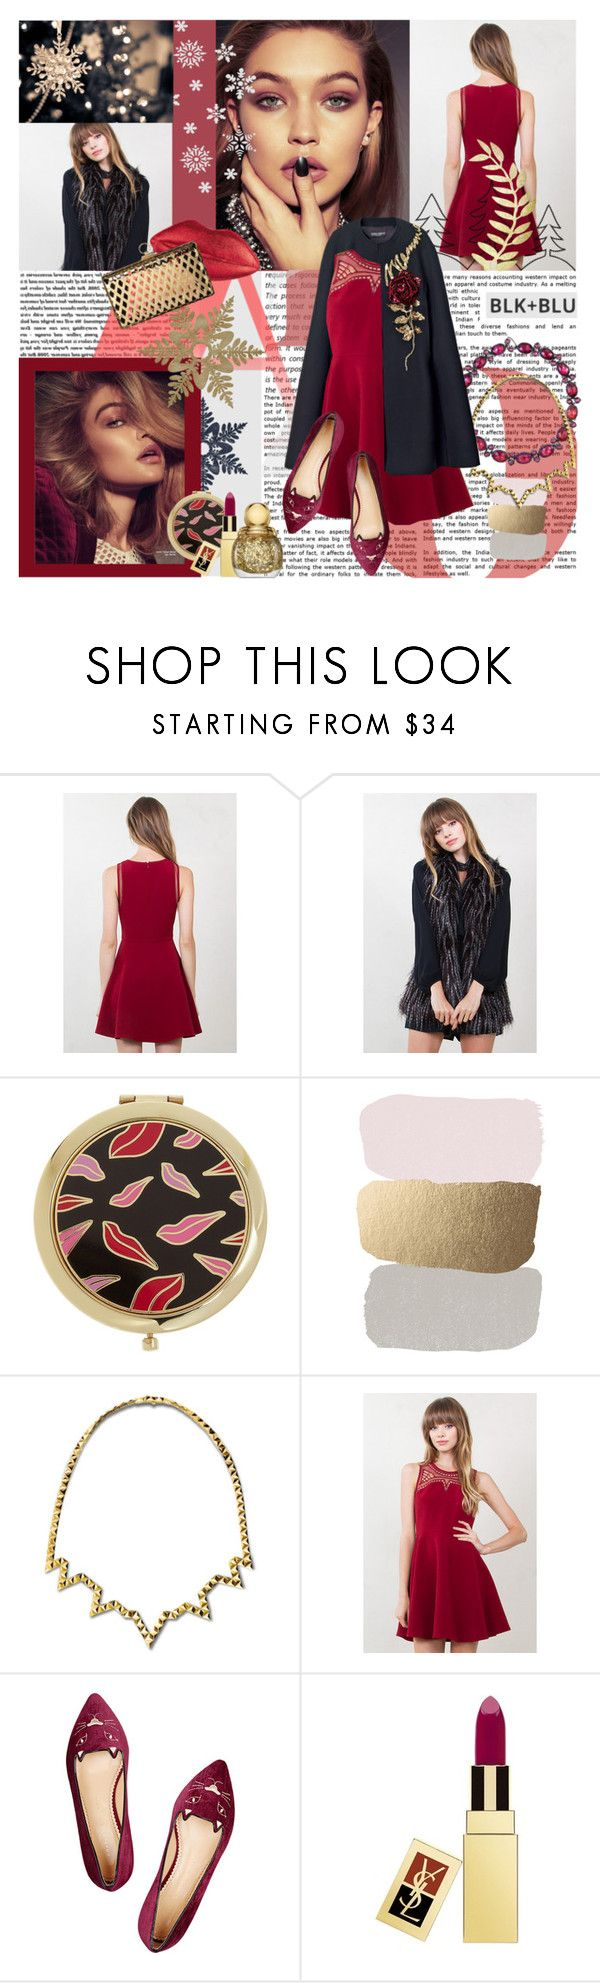 """""""Pretty lights on the tree, I'm watching them shine."""" by blueladybird ❤ liked on Polyvore featuring Diane Von Furstenberg, Larkspur & Hawk, Reece Hudson, Charlotte Olympia, Yves Saint Laurent, getmylook and blknbluonline"""